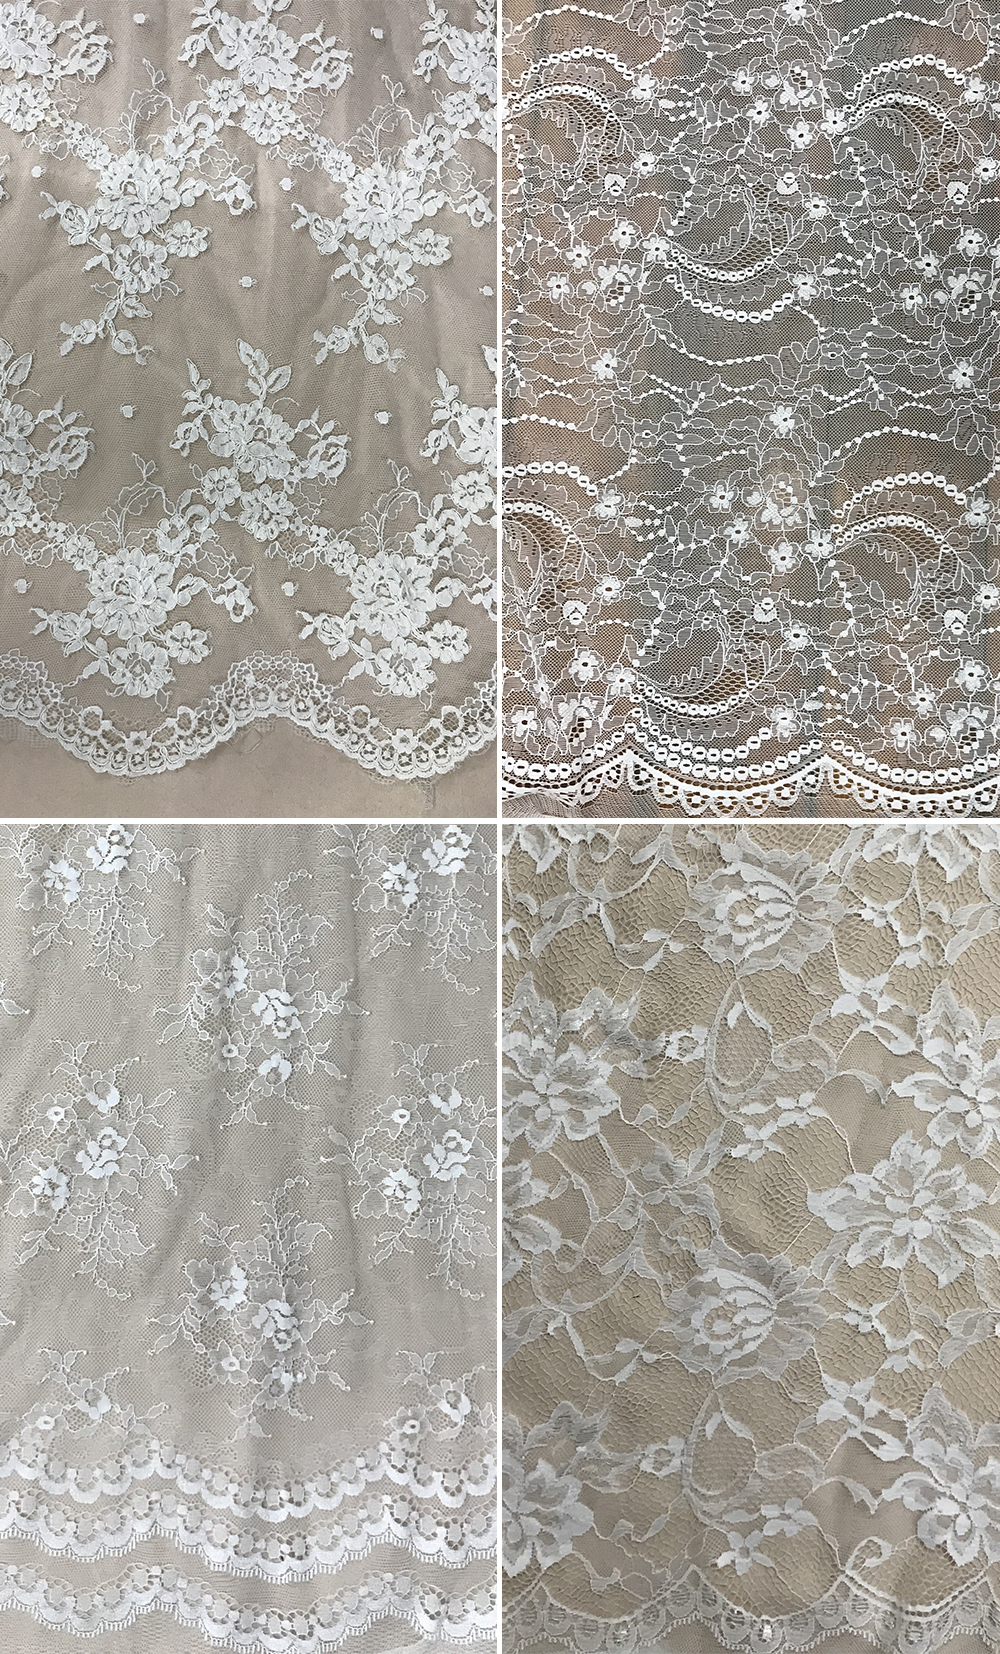 Samples of lace available from Anomalie for custom wedding gown.